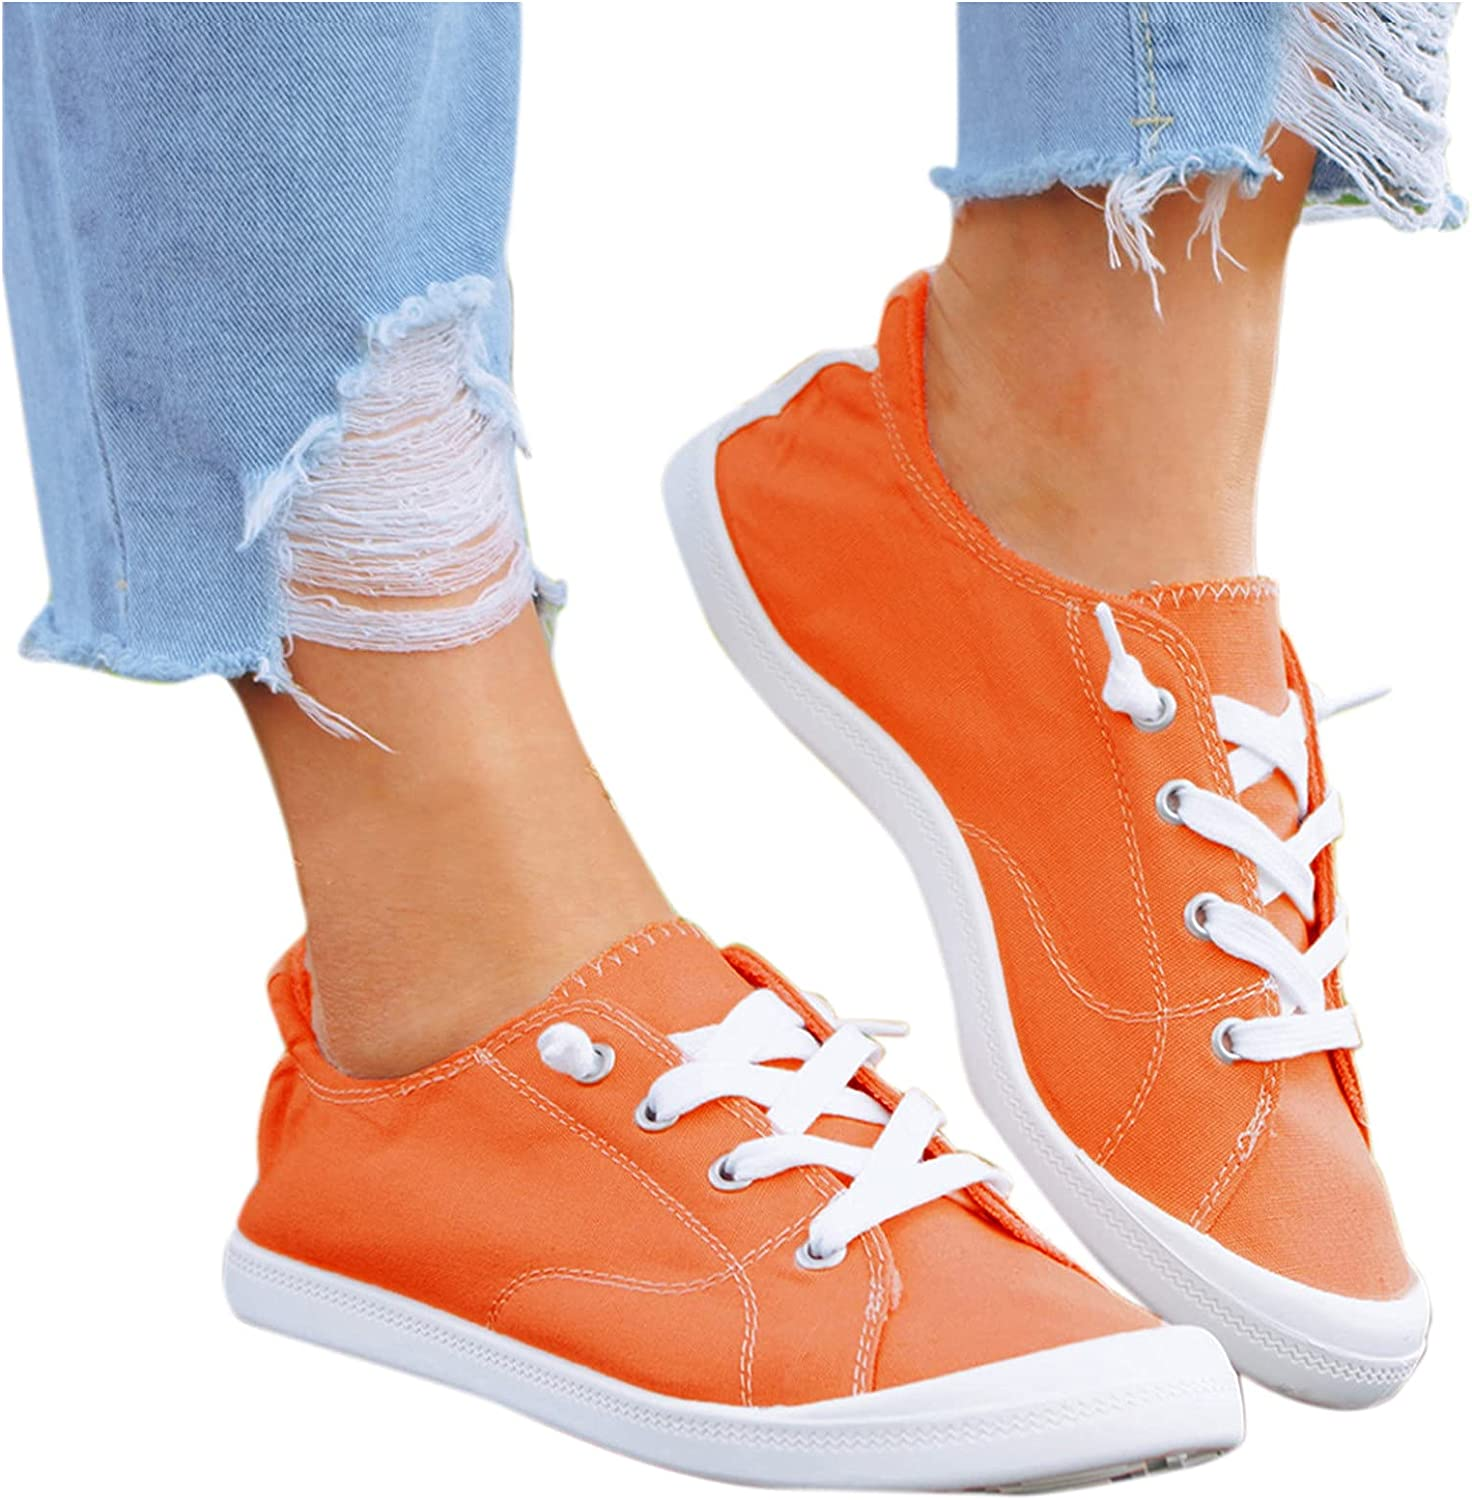 AODONG Walking Shoes for Women Sneakers Canvas Slip On Shoes Women Sneakers Lace Up Loafers Lightweight Running Shoes